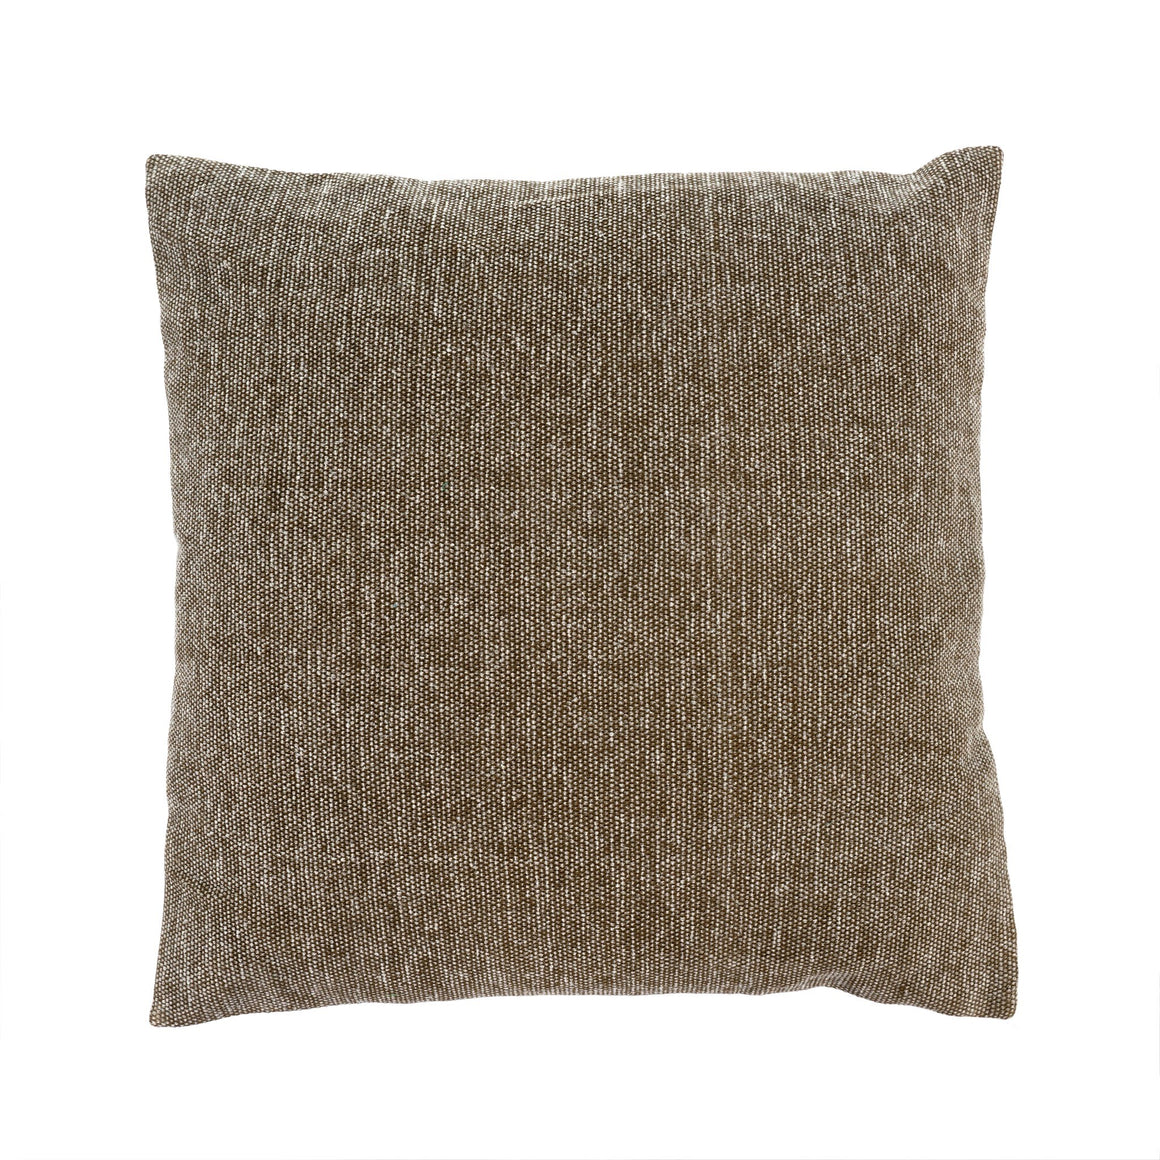 Earth Stonewashed Textured Pillow